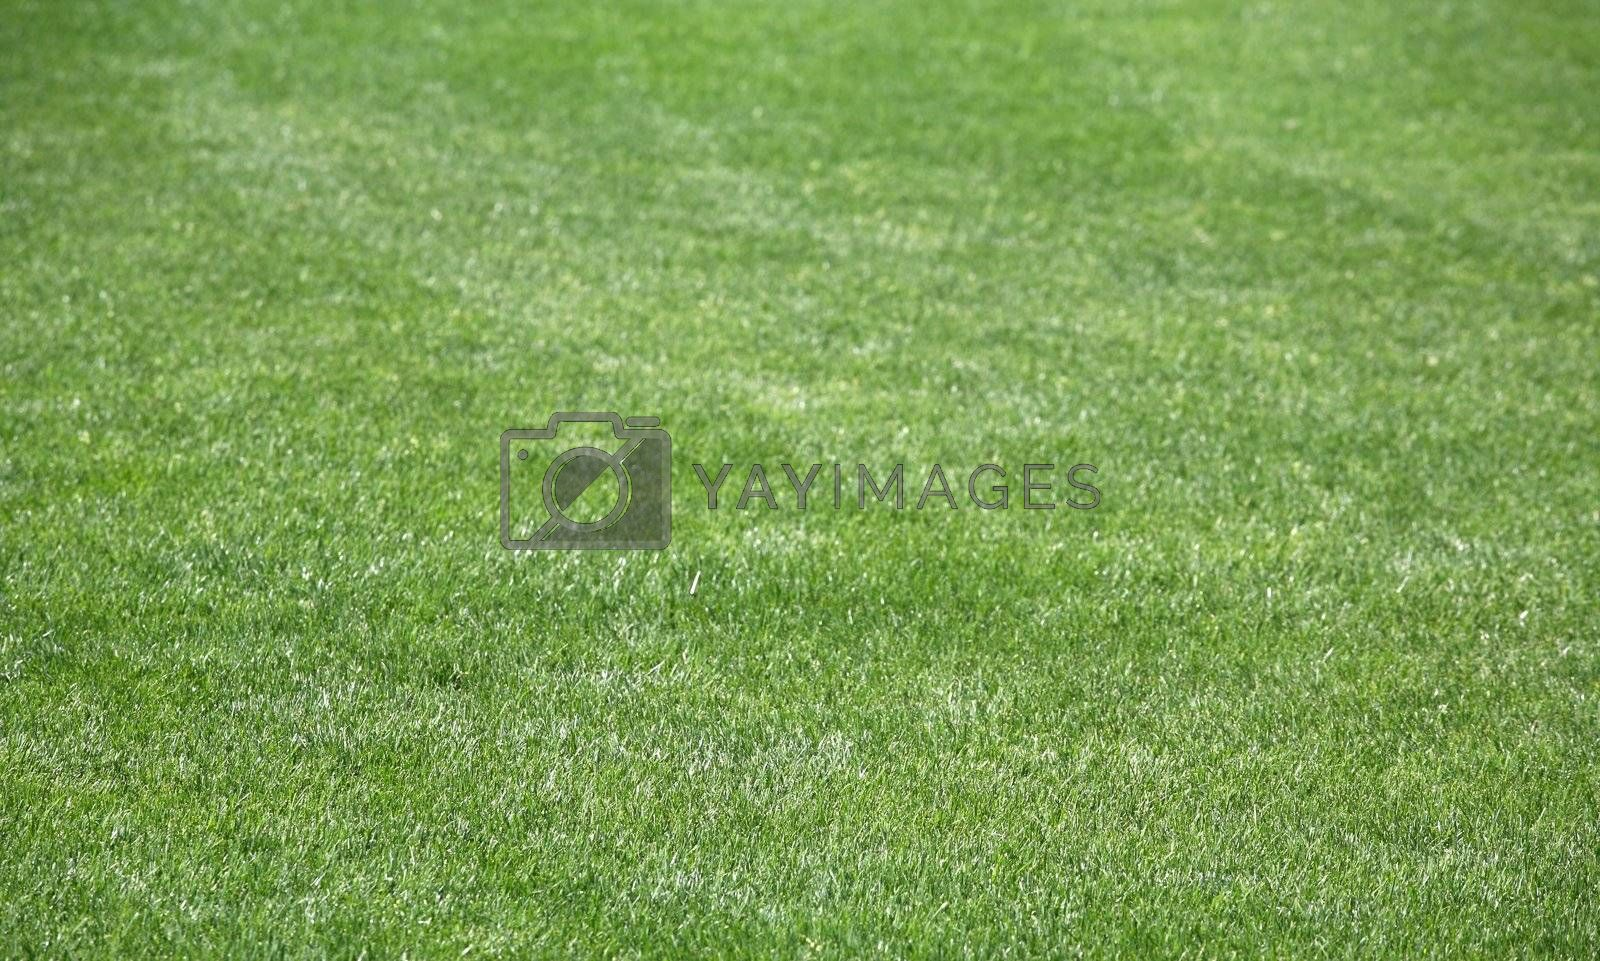 Royalty free image of Grass 5 by scrappinstacy